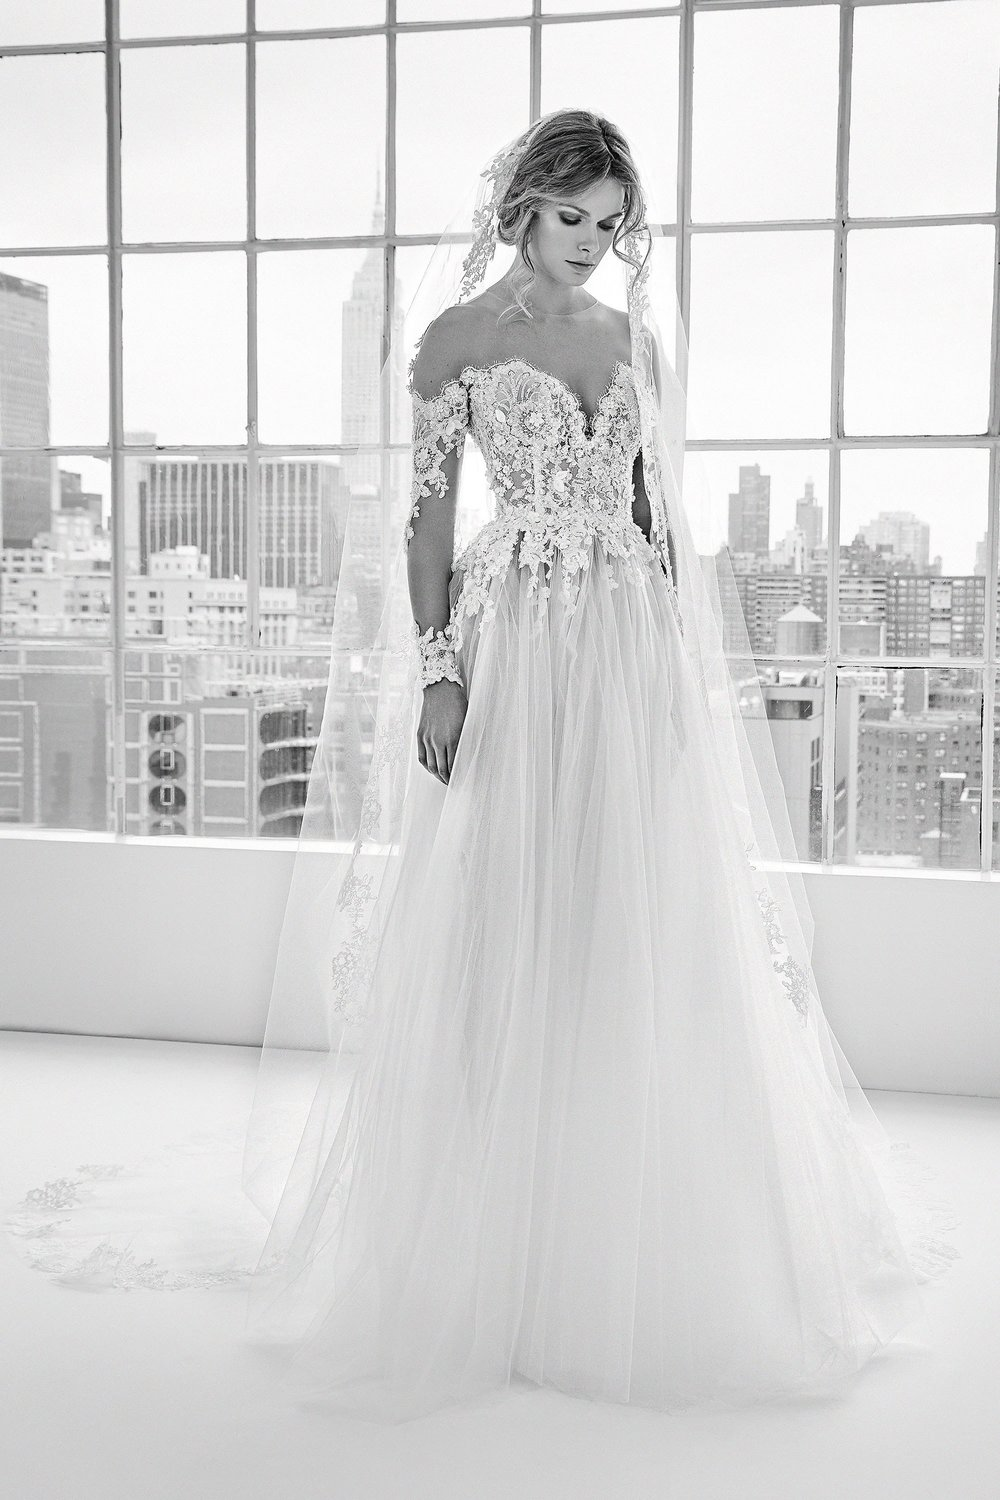 e564772c3c7 Biggest Wedding Fashion Trends for 2018 — KATES THE KEY